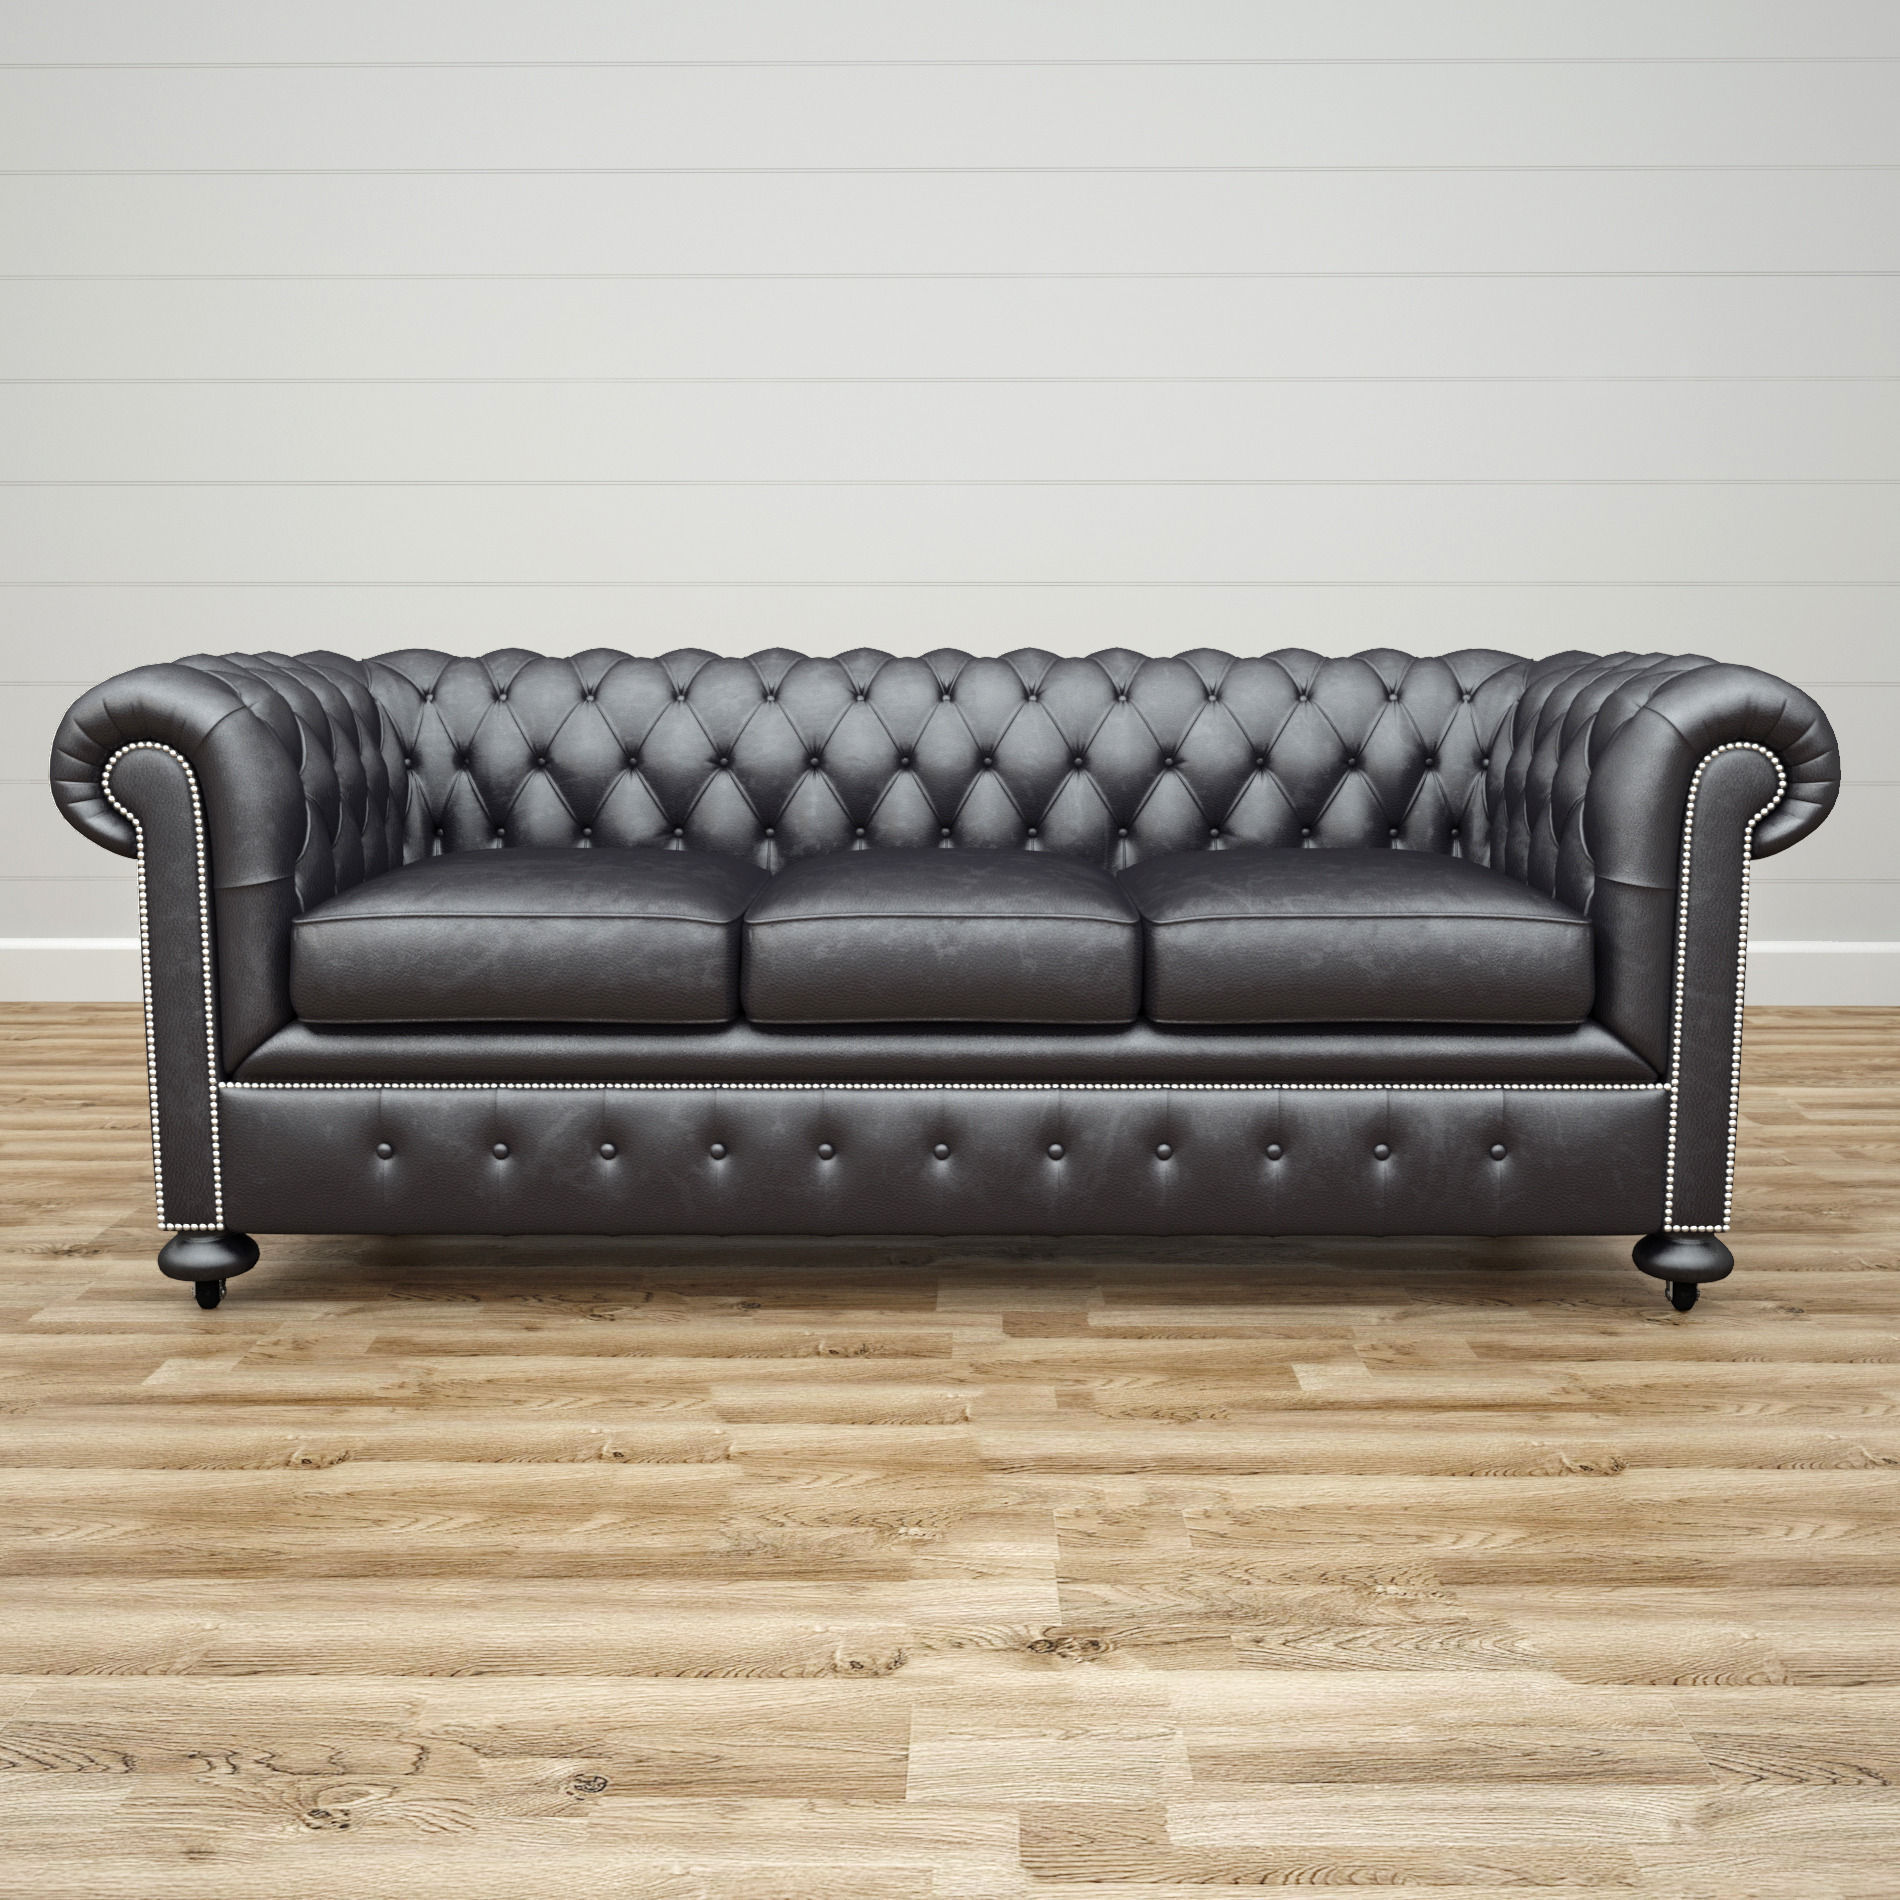 Delicieux ... William Blake Sofa Chesterfield Leather Black 3d Model Max Obj Mtl 3ds  Fbx 2 ...